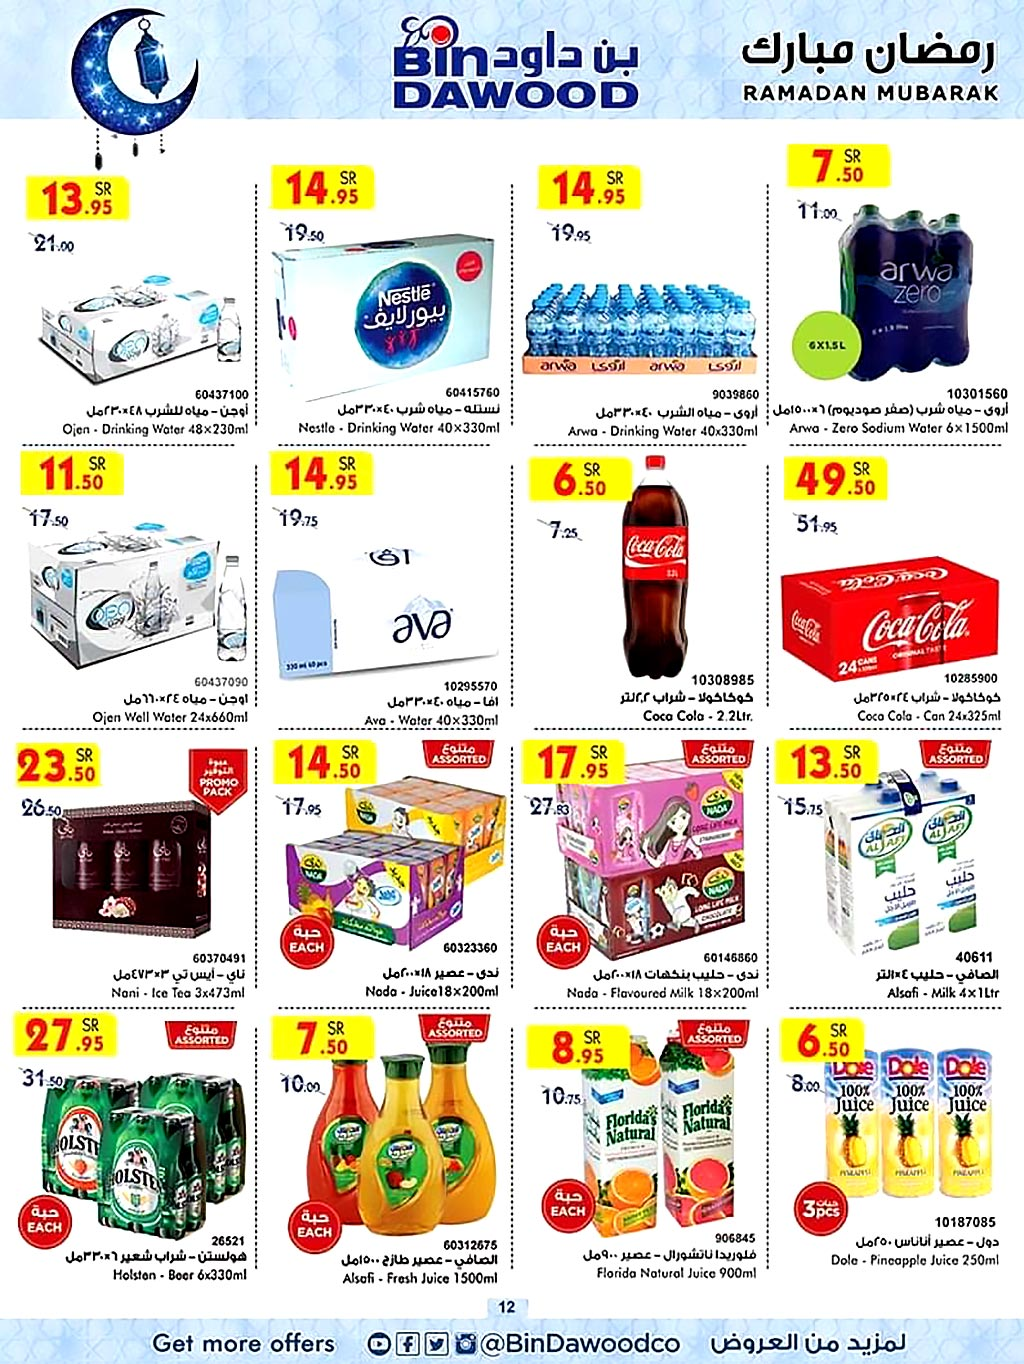 bindawood offers from 13may to 19may 2020 page number 12 عروض بـن داوود من 13 مايو حتى 19 مايو 2020 صفحة رقم 12